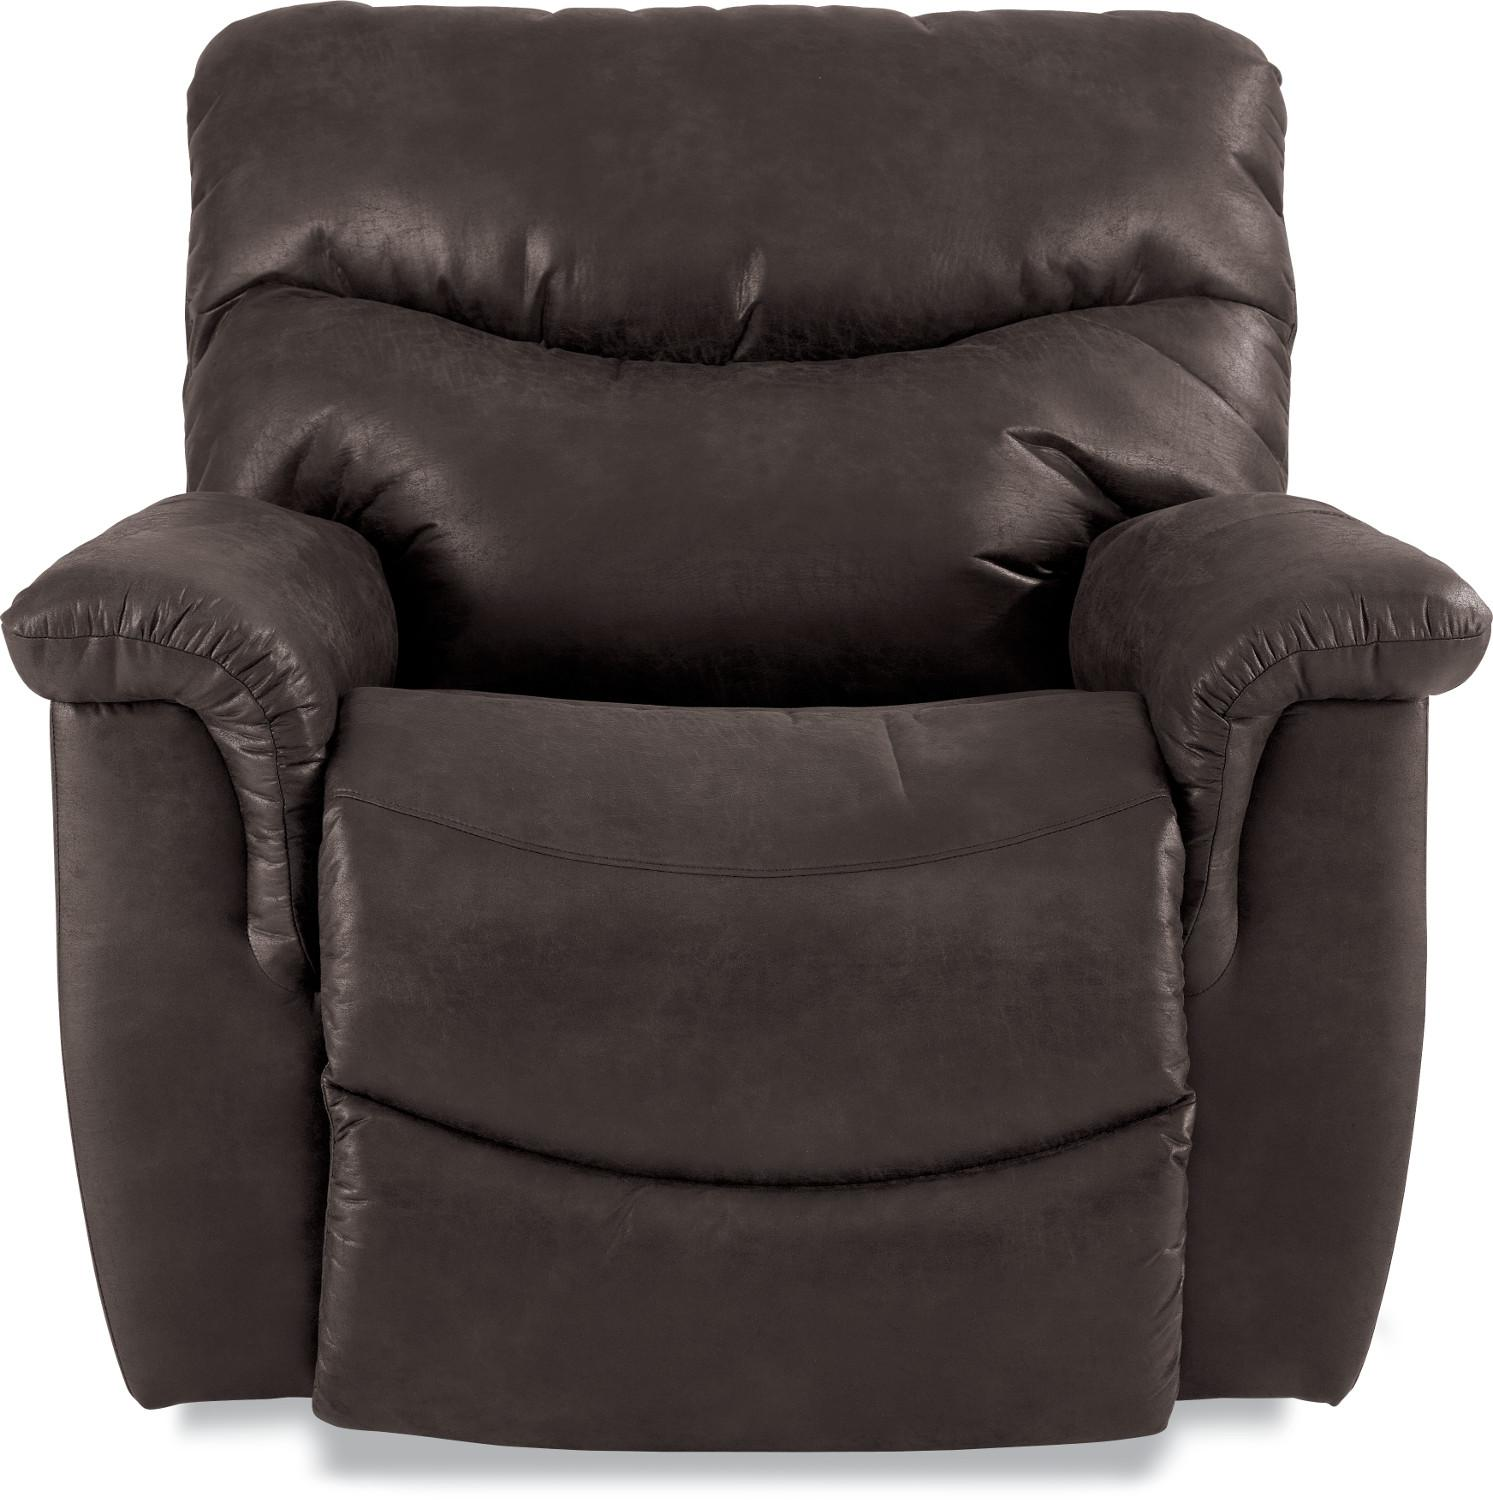 James Power Reclining Chair and a Half w/ Headrest by La-Z-Boy at SuperStore